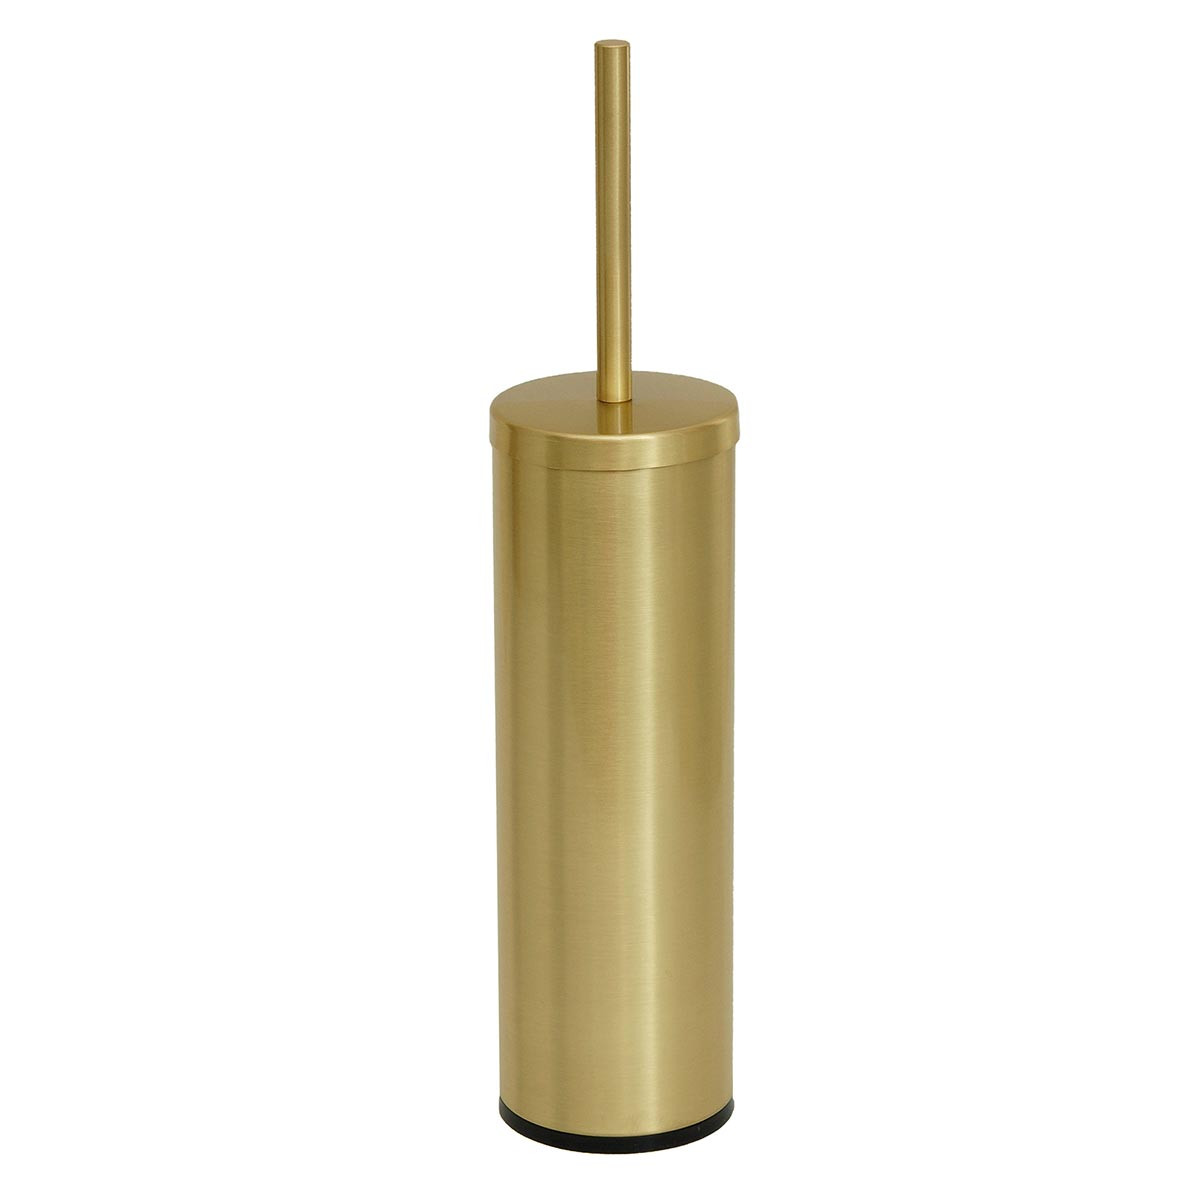 Πιγκάλ PamCo 616 Brushed Brass